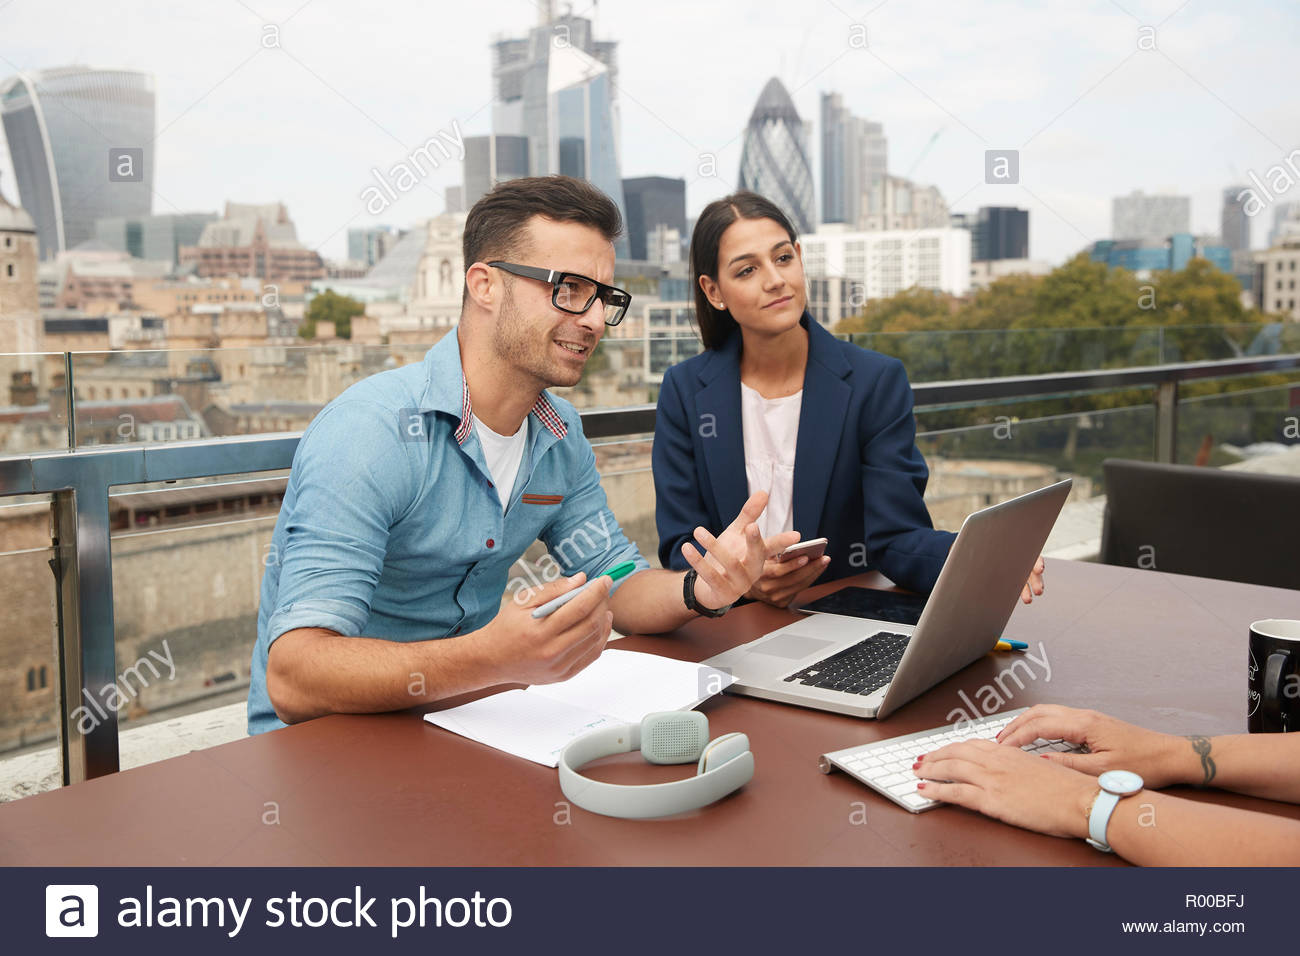 Businesspeople during meeting on balcony Stock Photo